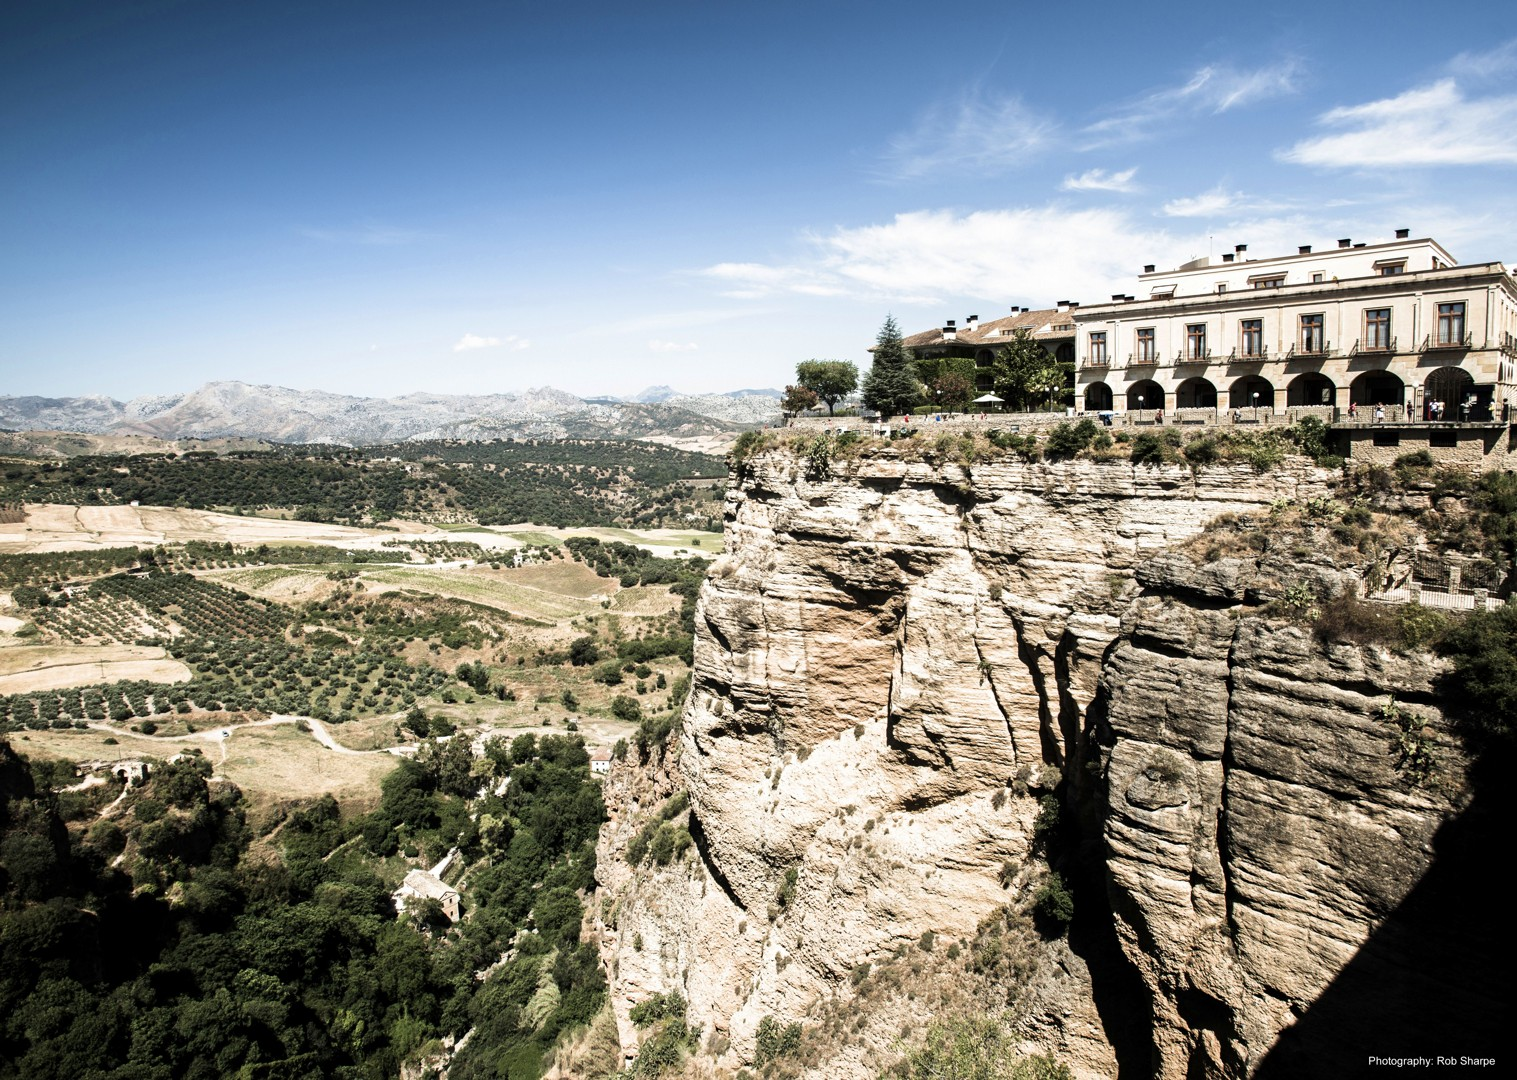 ronda-spain-self-guided-road-cycling-holiday-los-pueblos-blancos-andalucia.jpg - Southern Spain - Andalucia - Los Pueblos Blancos - Self-Guided Road Cycling Holiday - Road Cycling